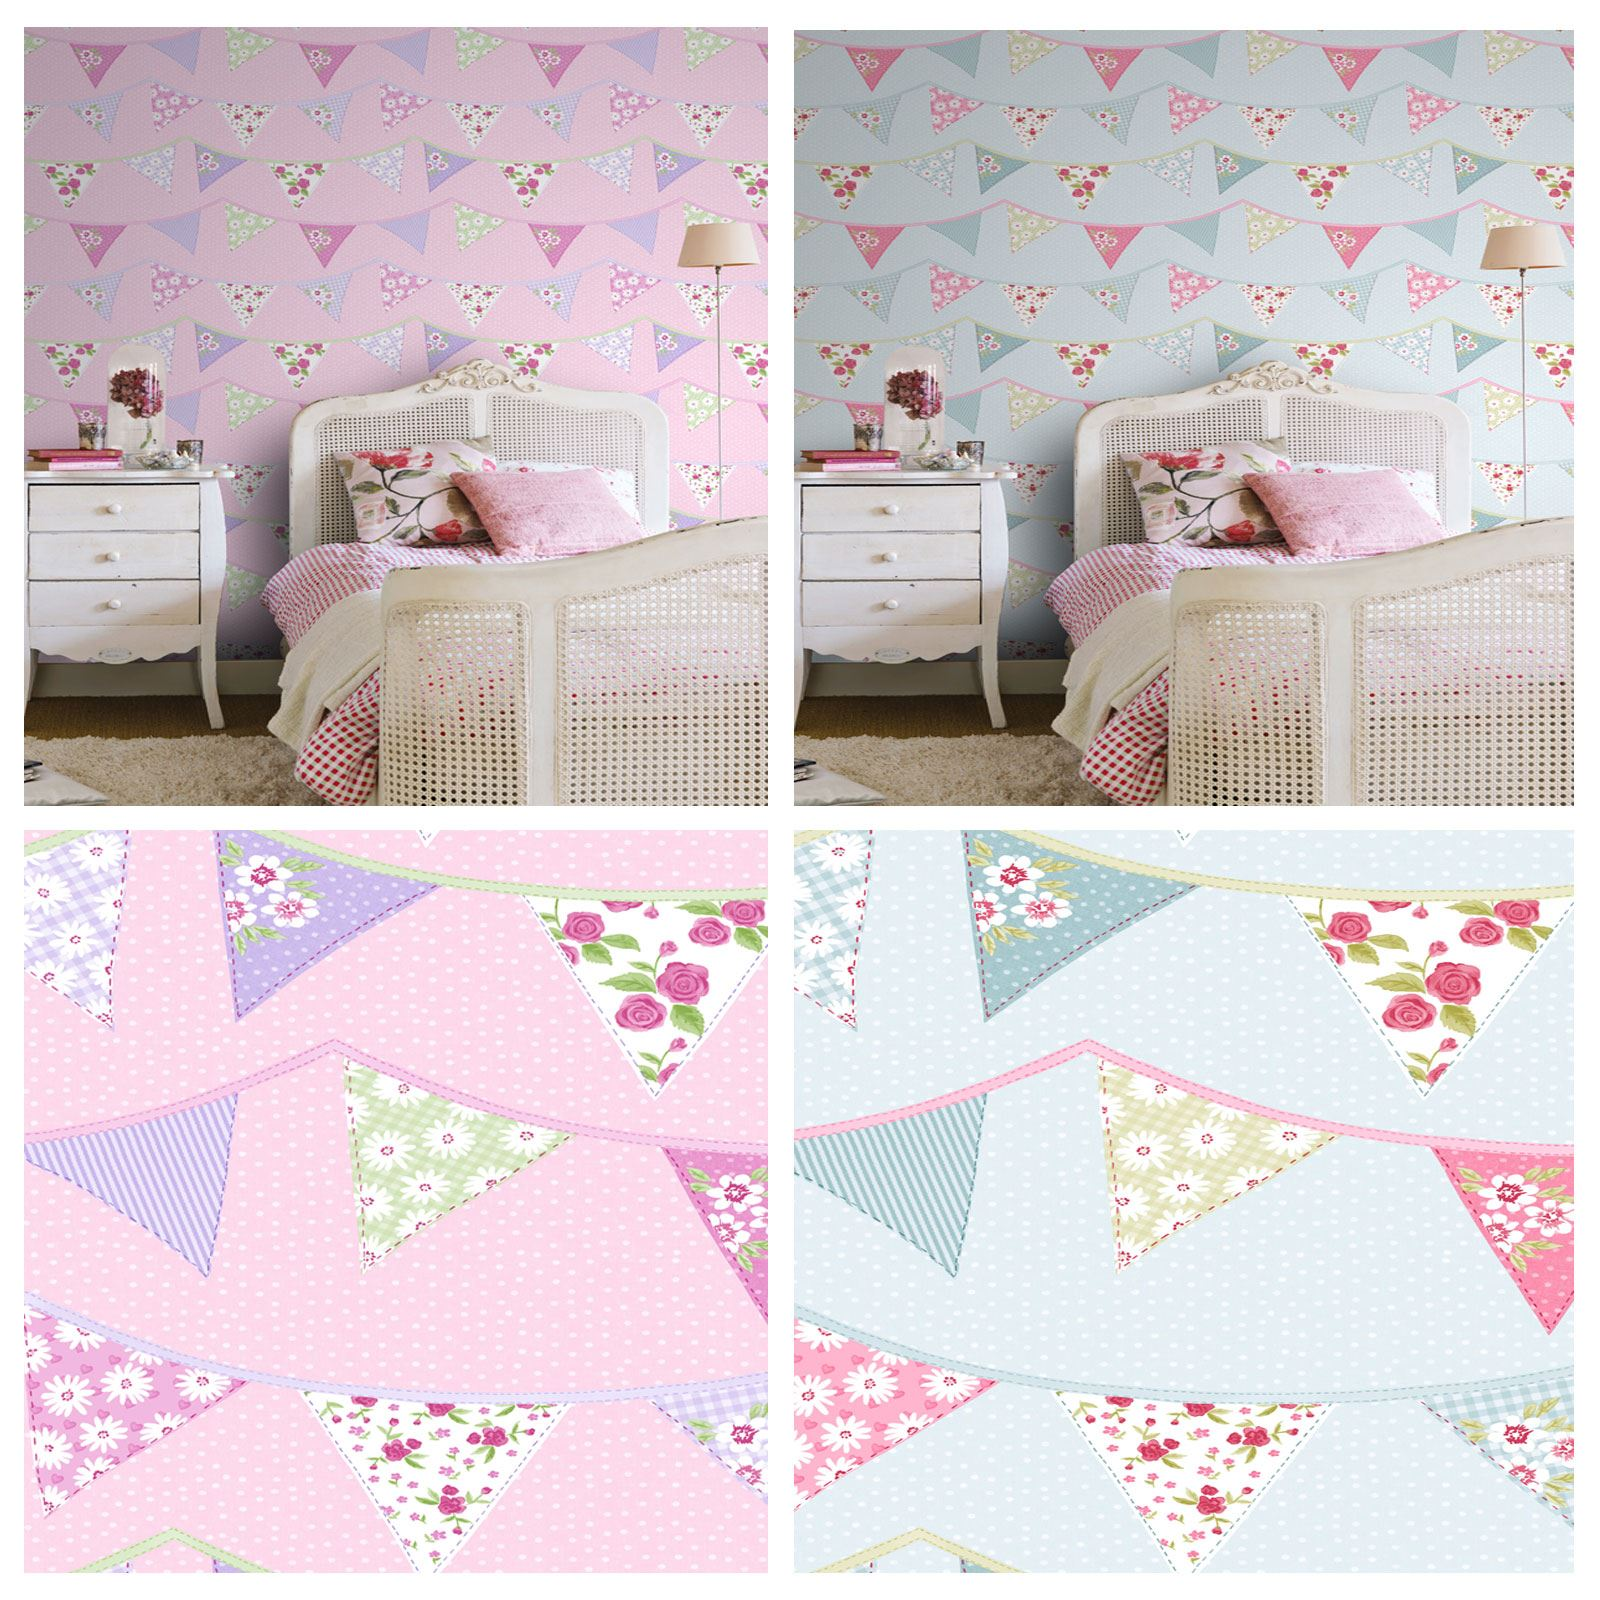 Exceptional BUNTING WALLPAPER BLUE PINK PASTEL FLORAL DESIGN WASHABLE GIRLS BEDROOM